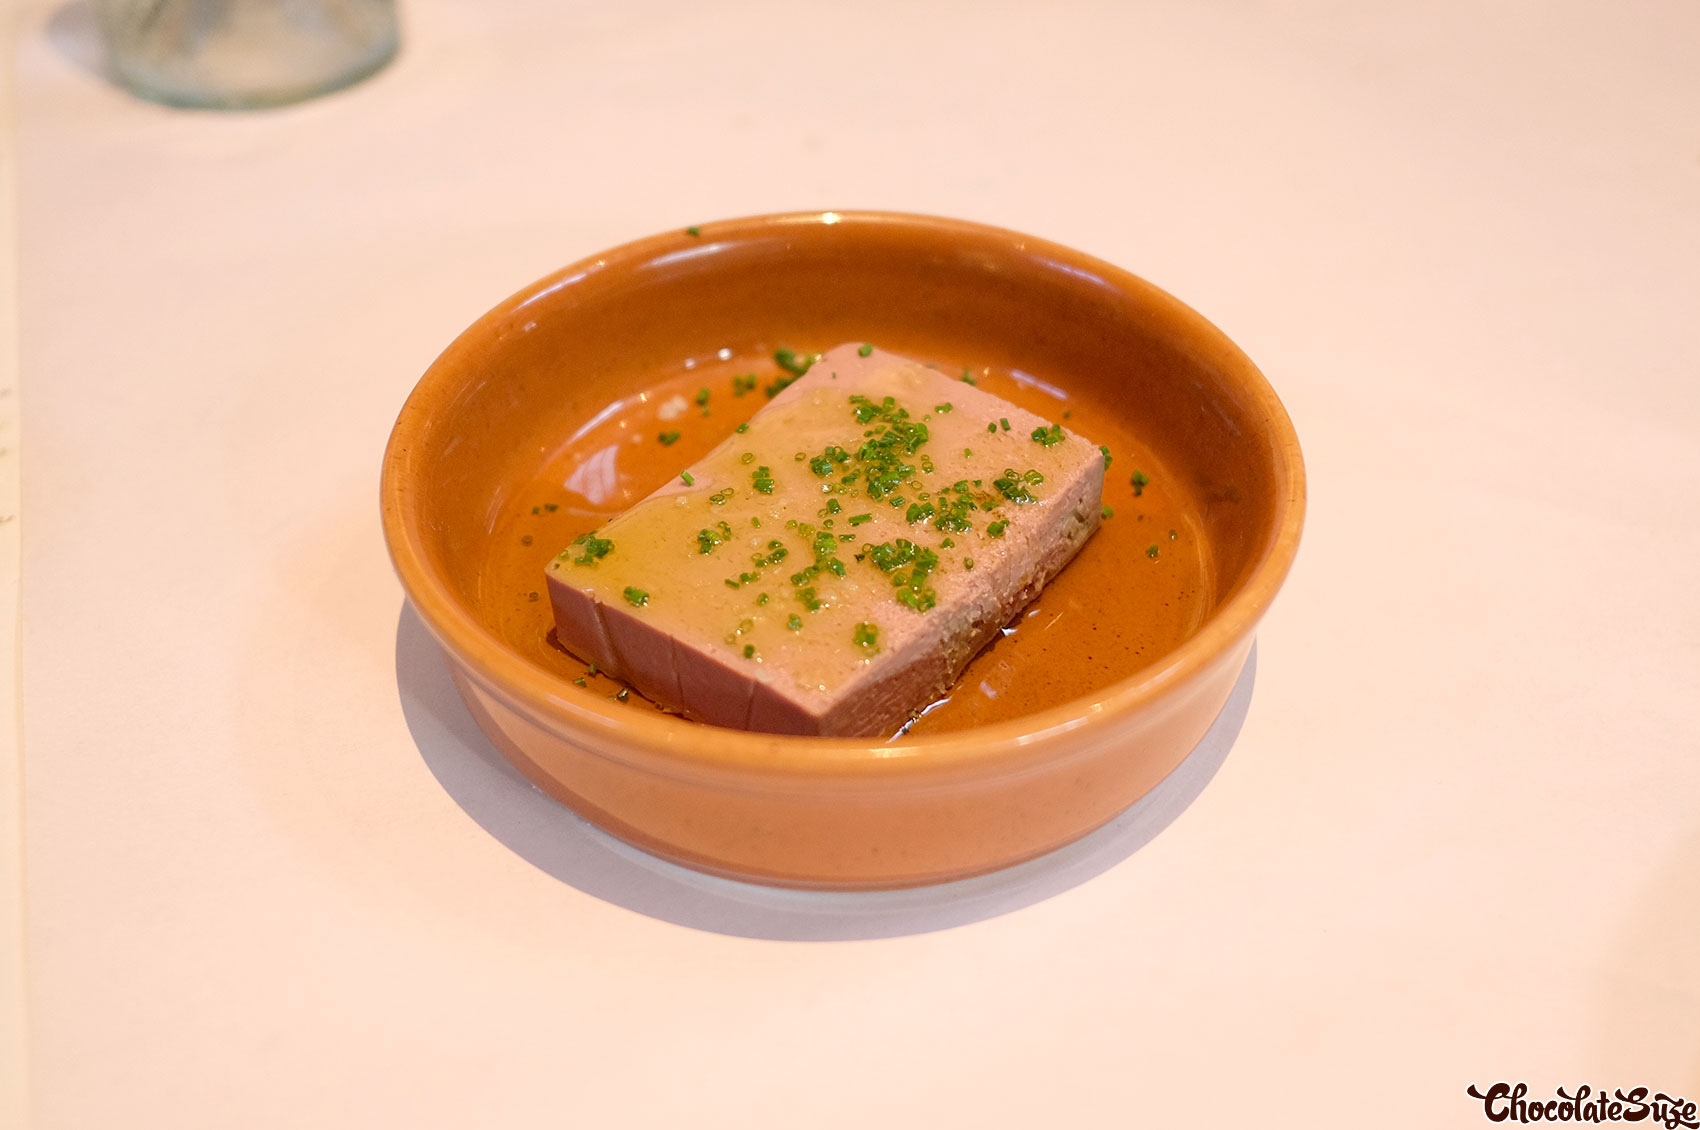 Chicken liver parfait at Totti's, Bondi